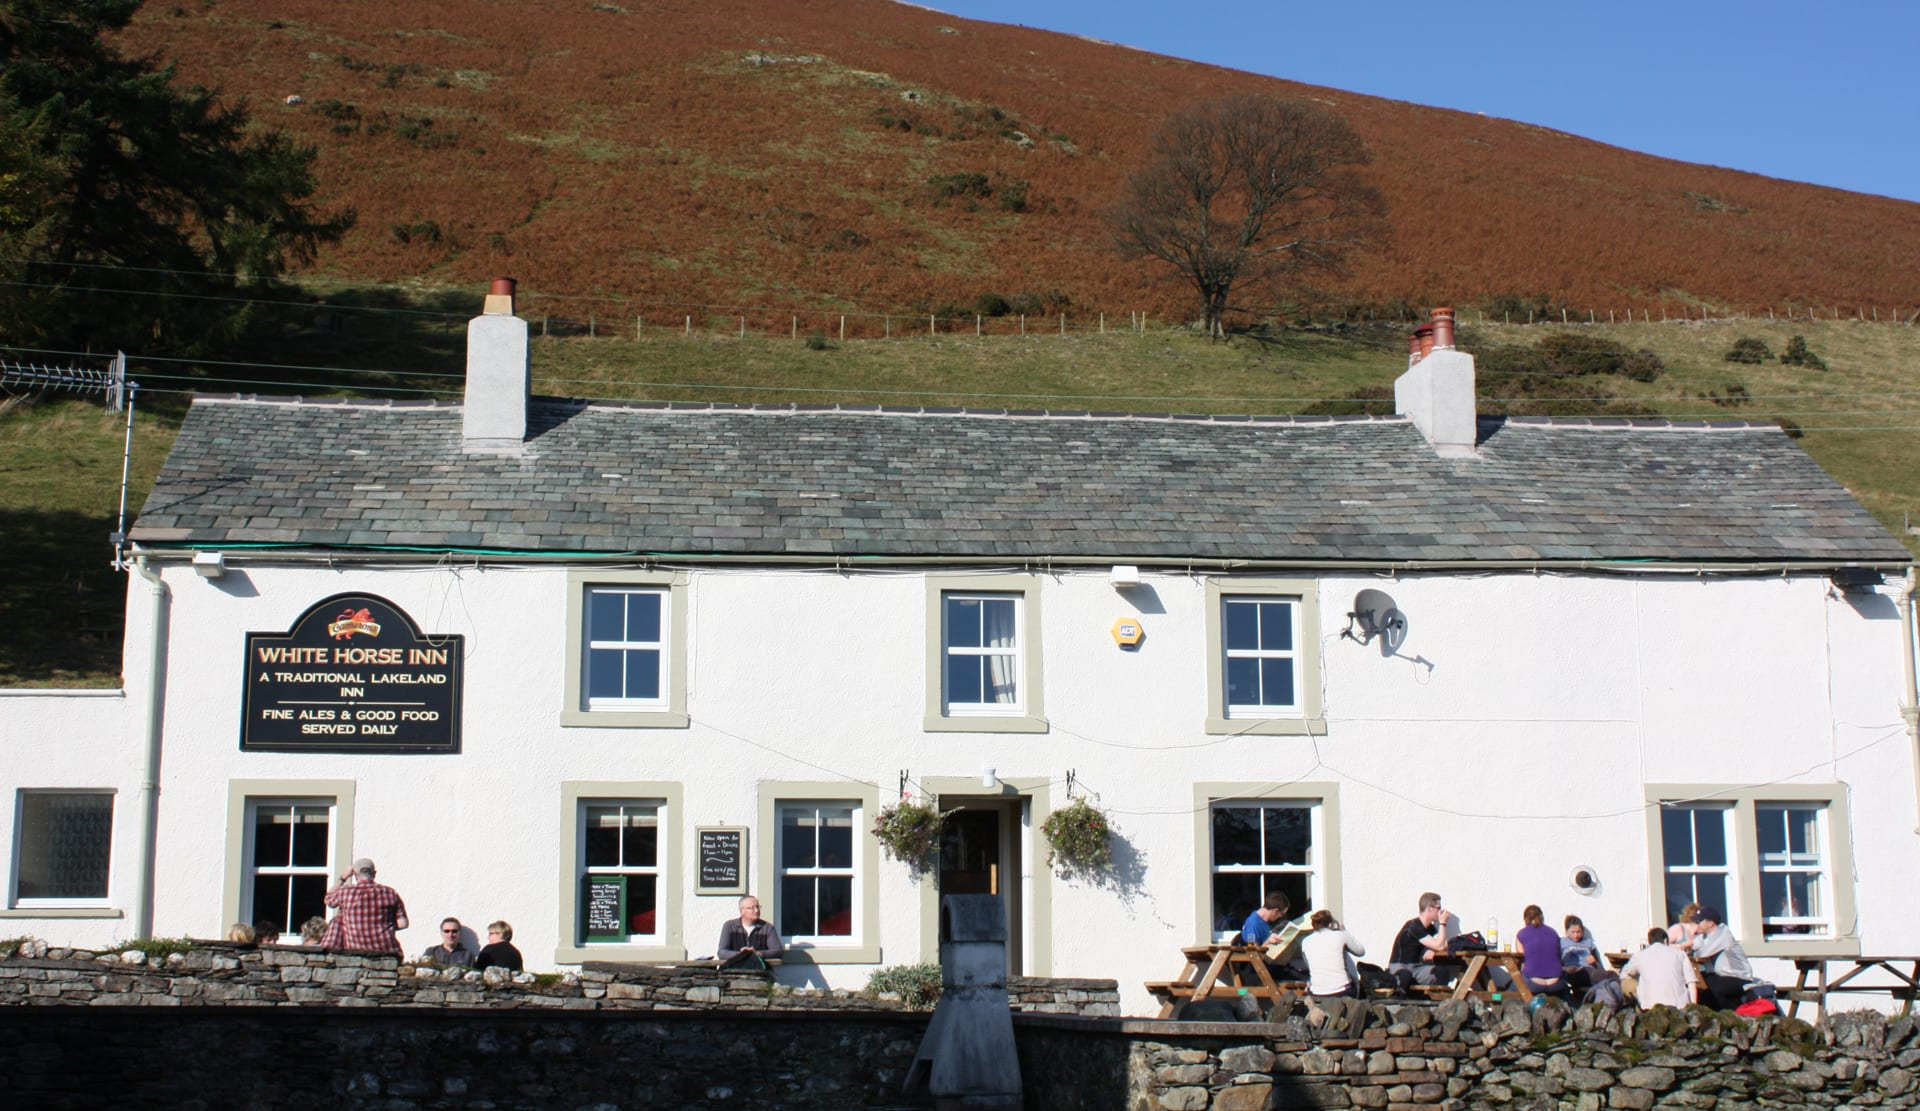 The White Horse Inn Bunkhouse Bunkhouse, Inn and group accommodation at the foot of Blencathra in the Lake District